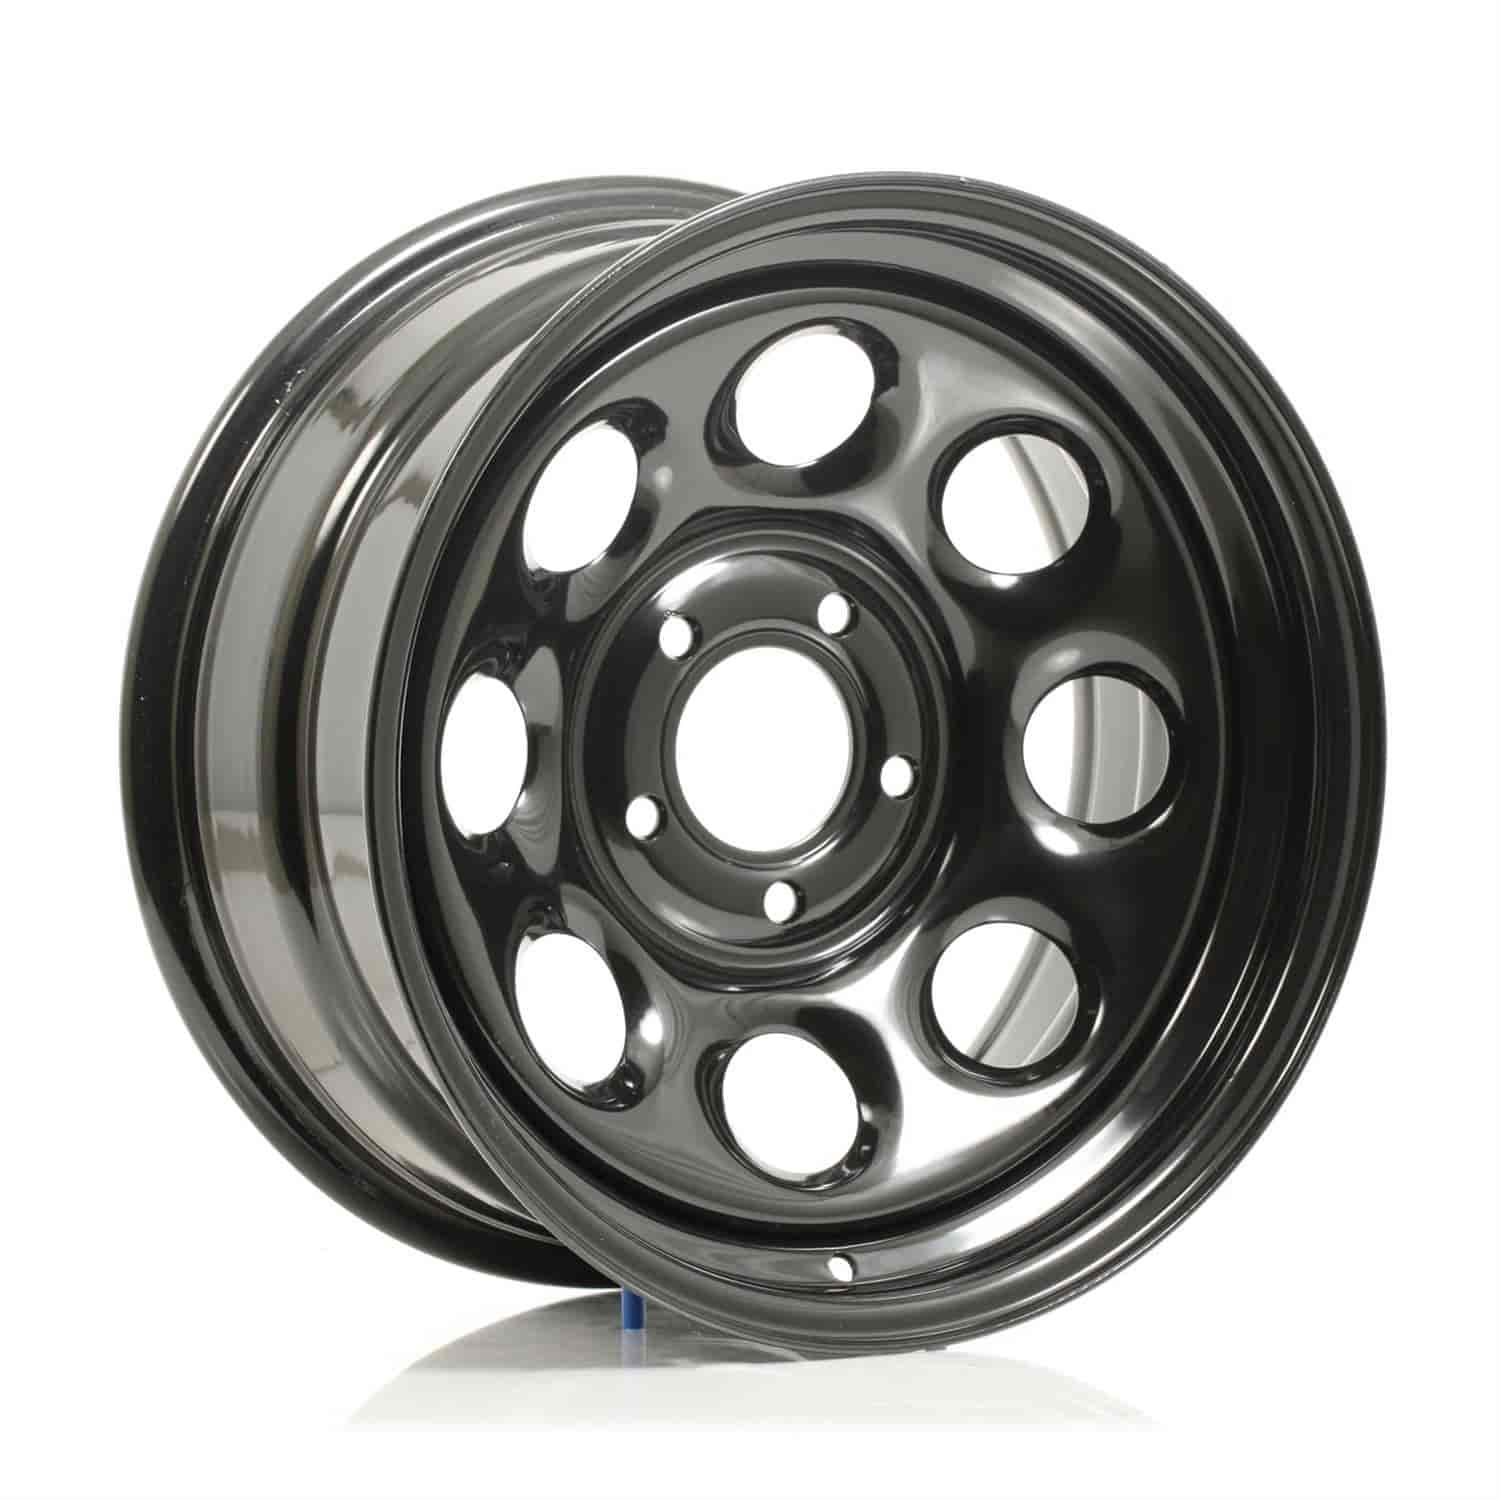 Cragar 3978812 - Cragar Black Soft 8 Wheels